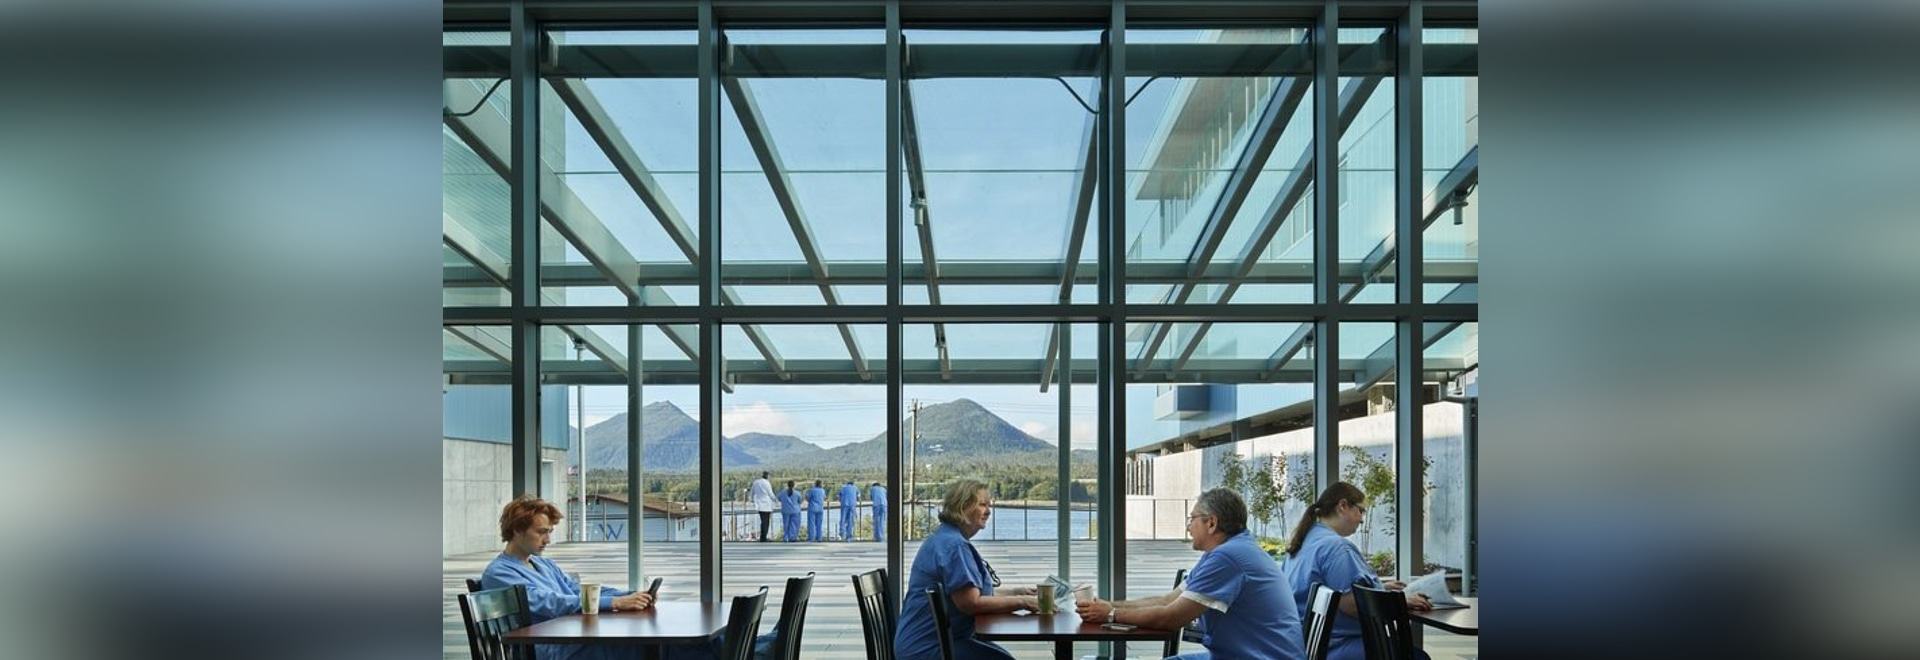 Nature's cure: how biophilic design can enhance healing